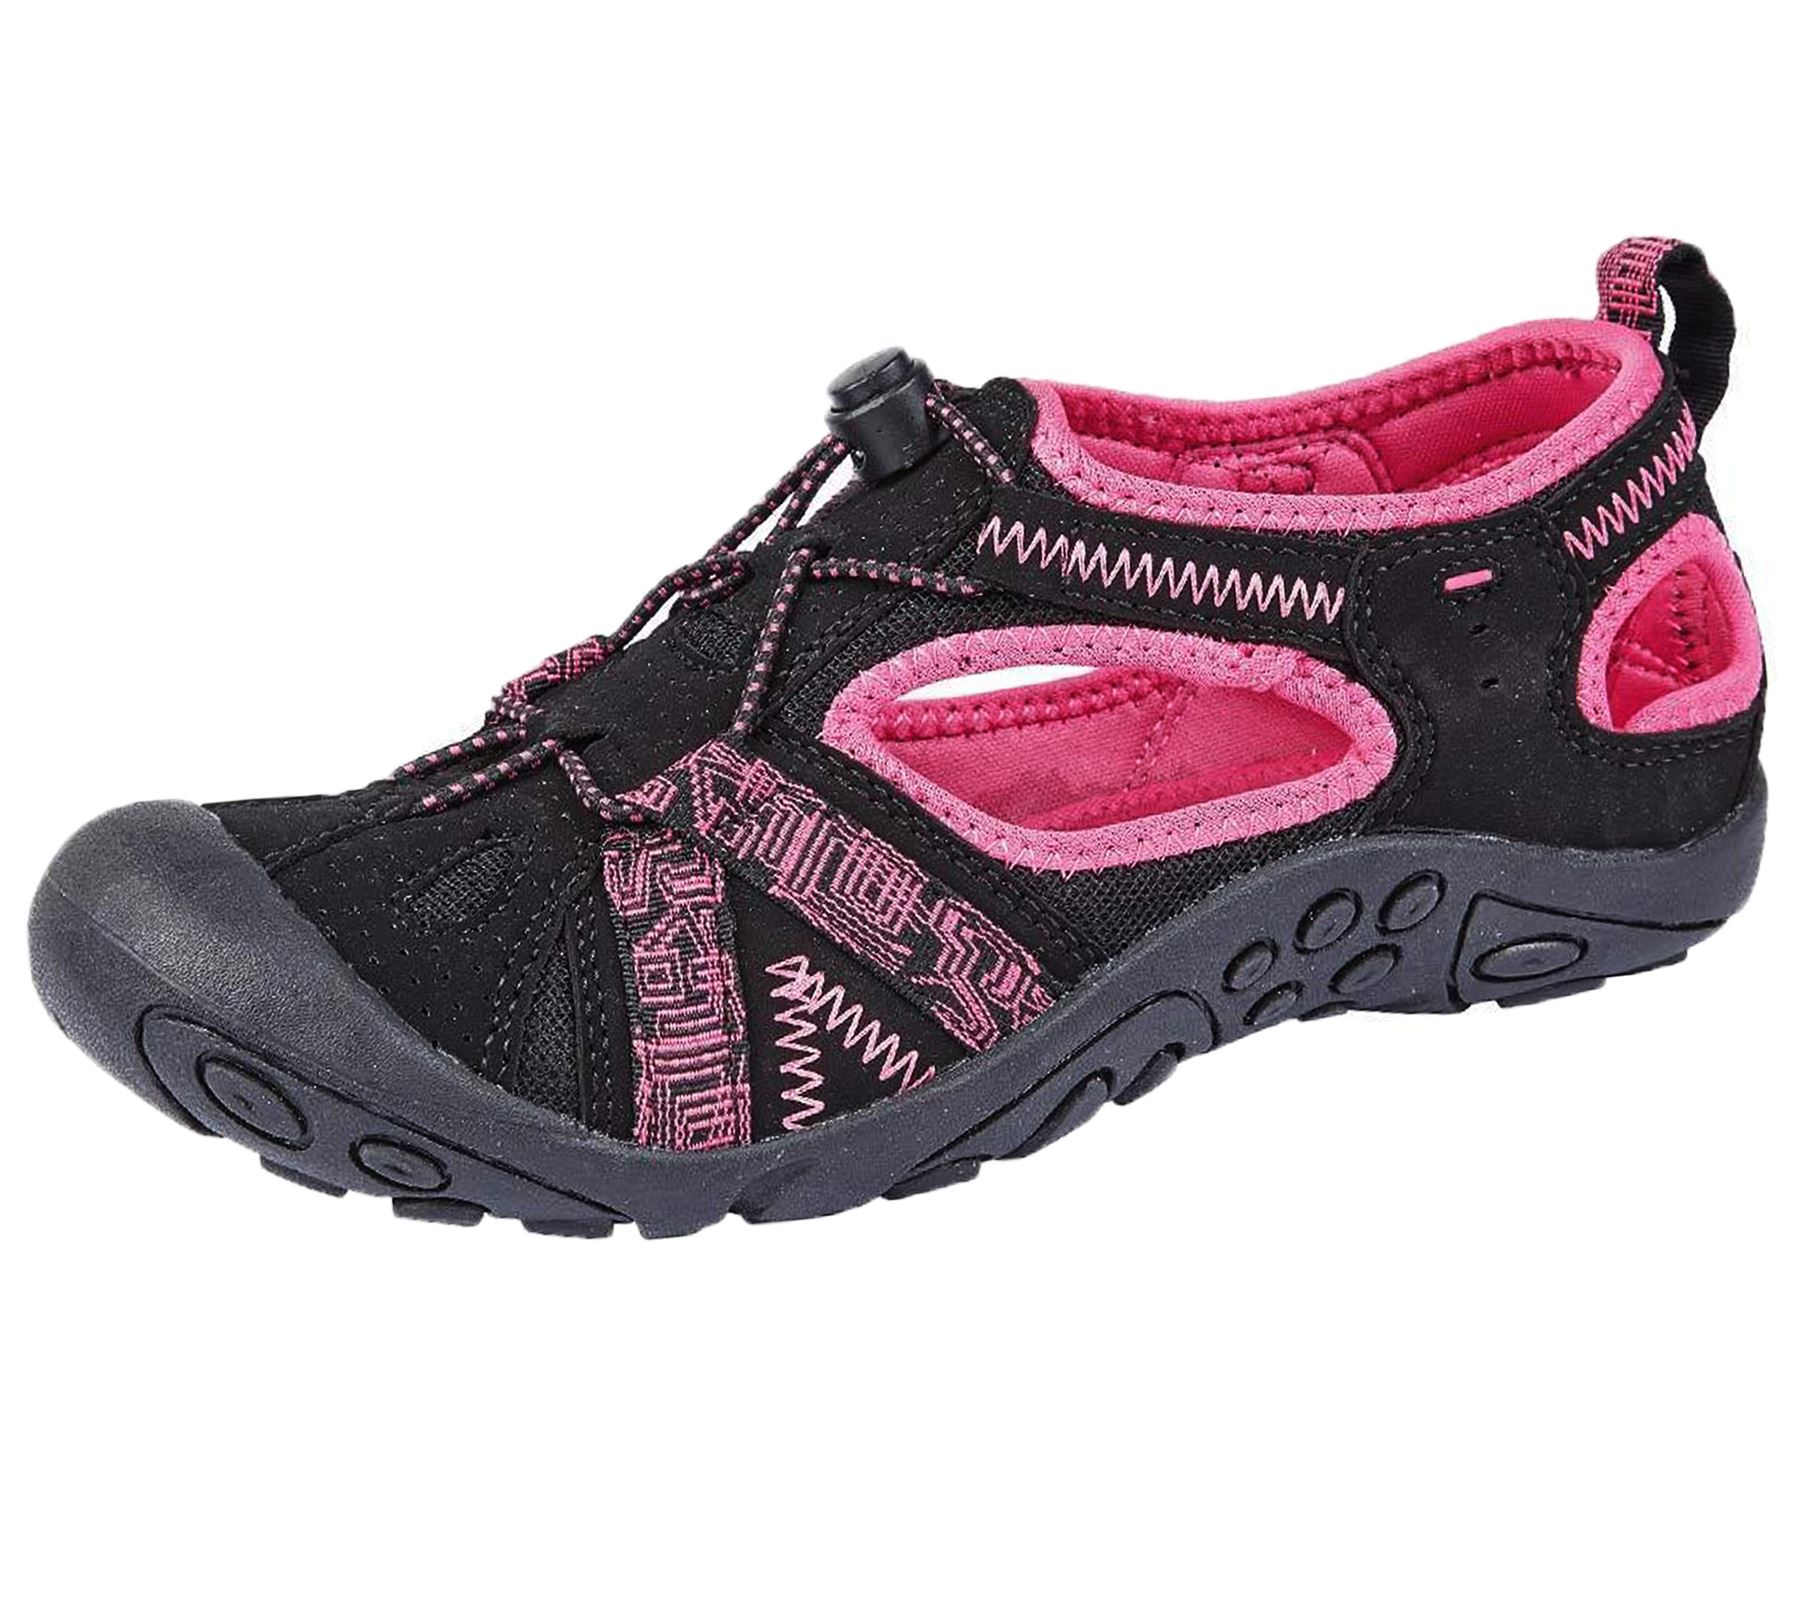 Womens Size   Ee Shoes